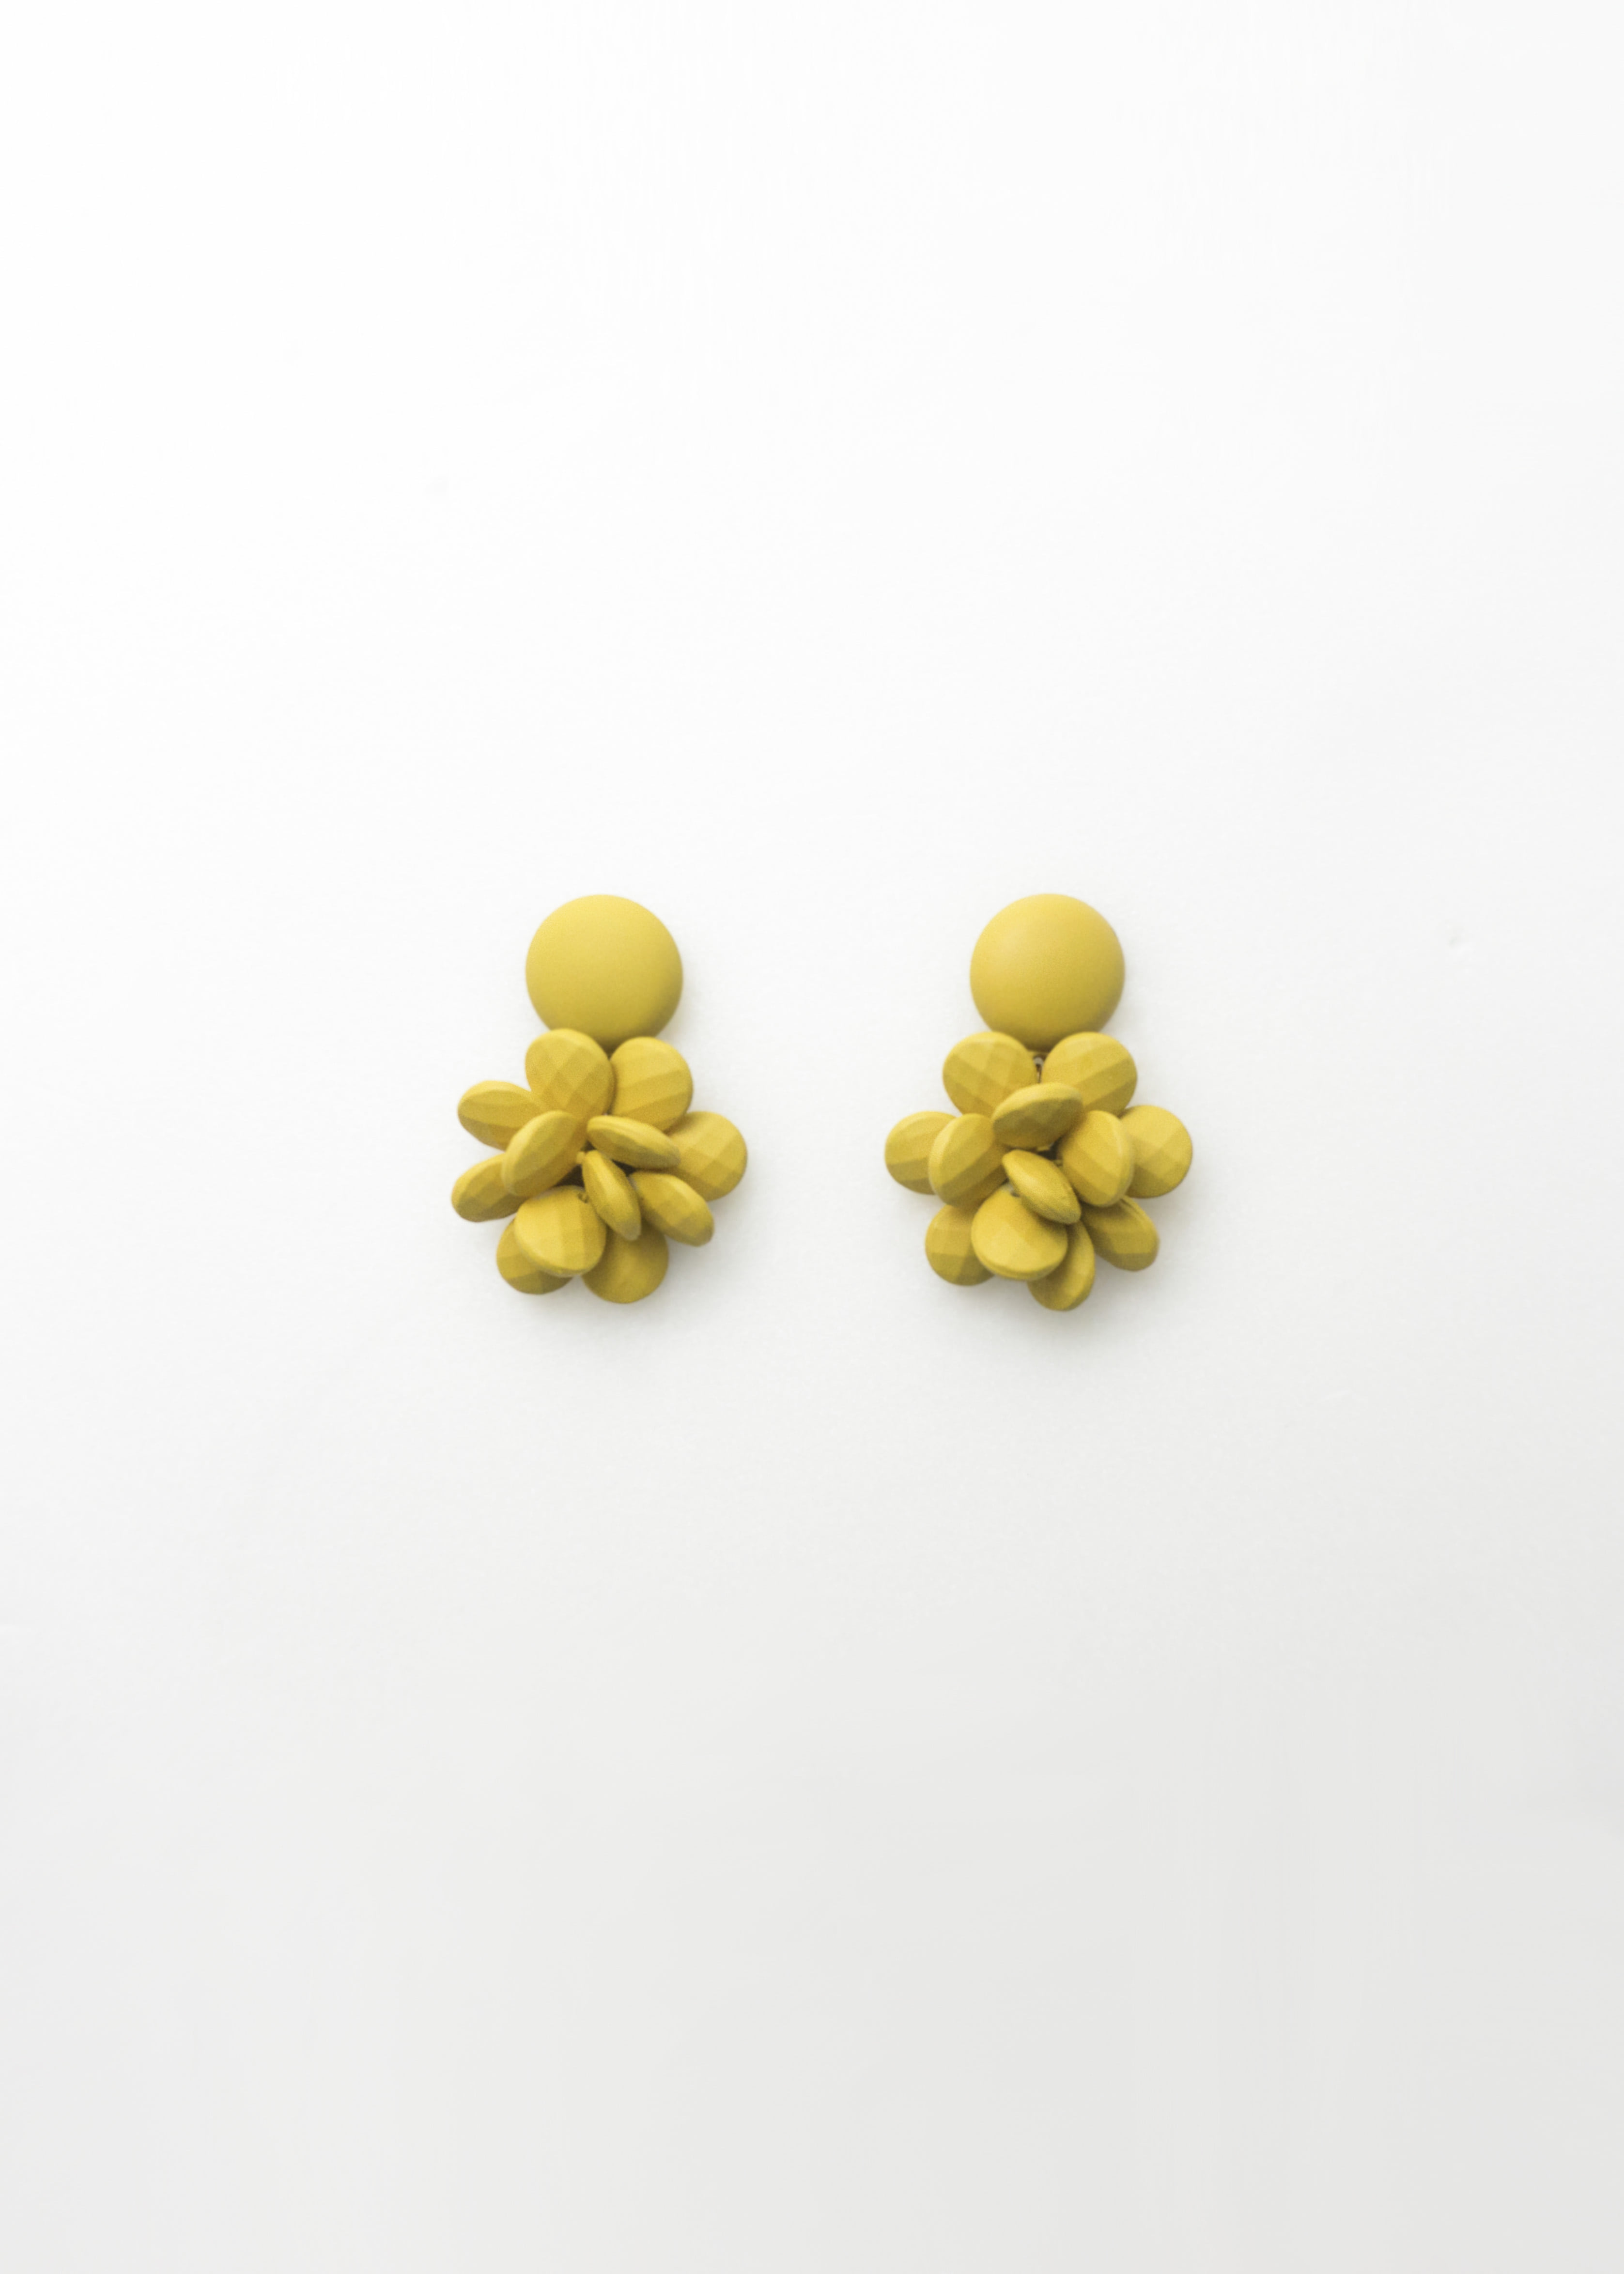 Pine Cone Color Earring 솔방울 컬러 이어링